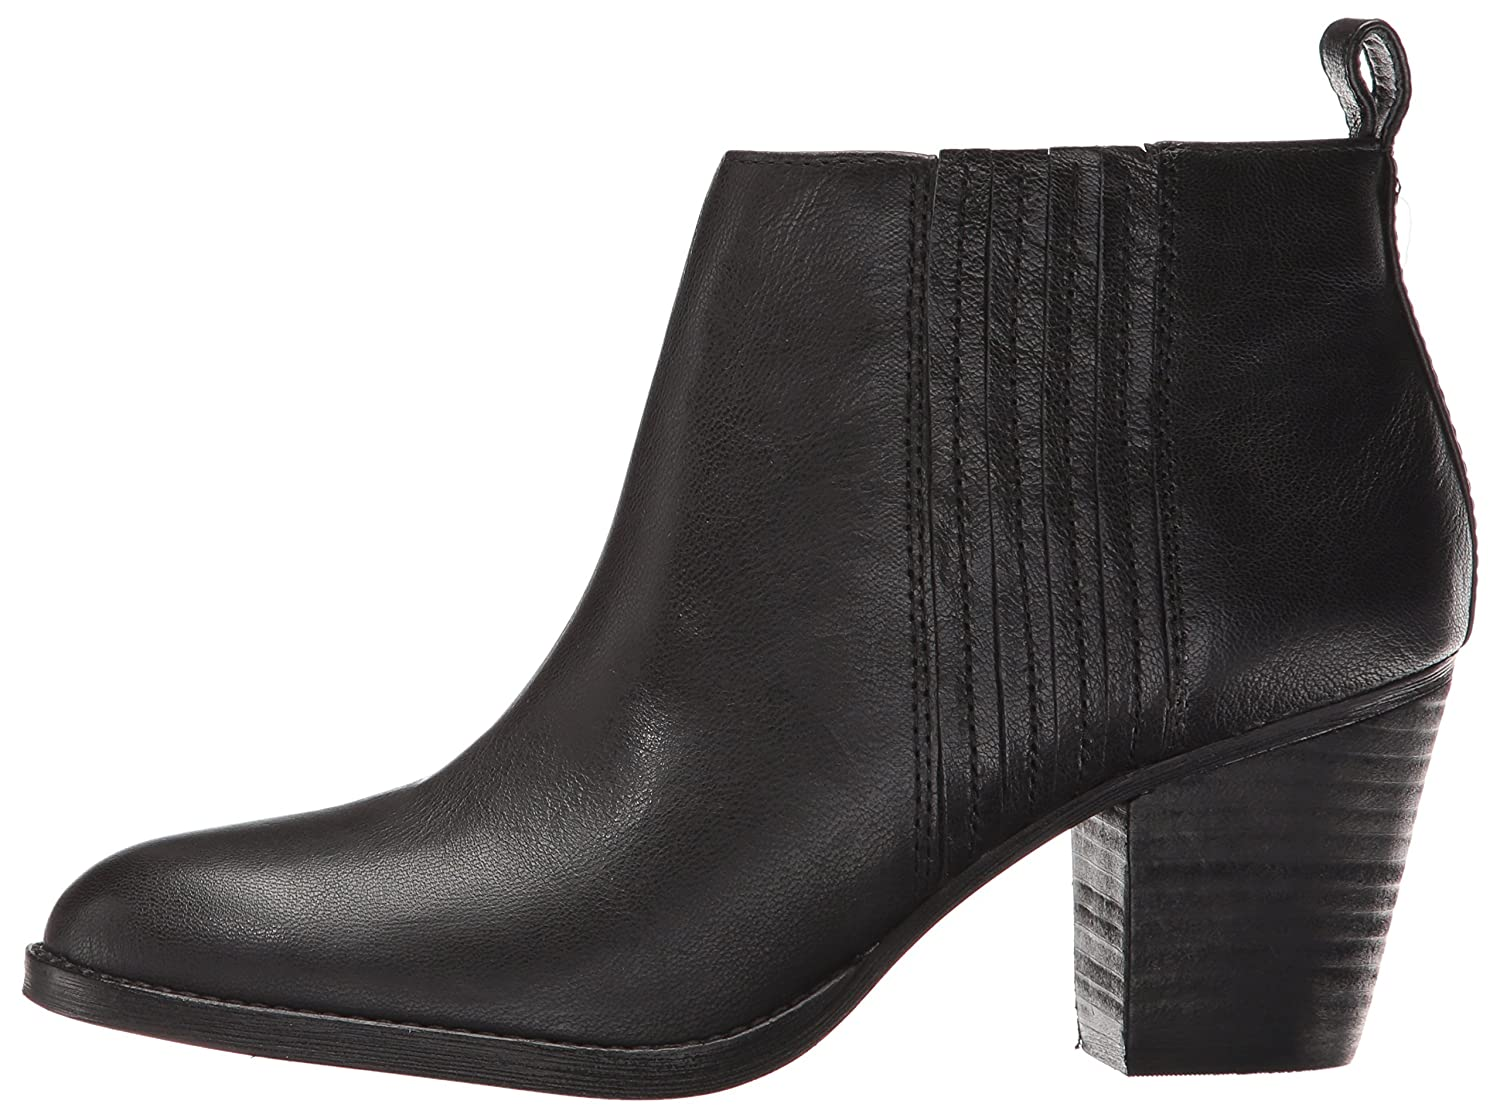 Nine B01EWYHKQQ West Women's Fiffi Ankle Bootie B01EWYHKQQ Nine 10.5 B(M) US|Black Leather be3fc7